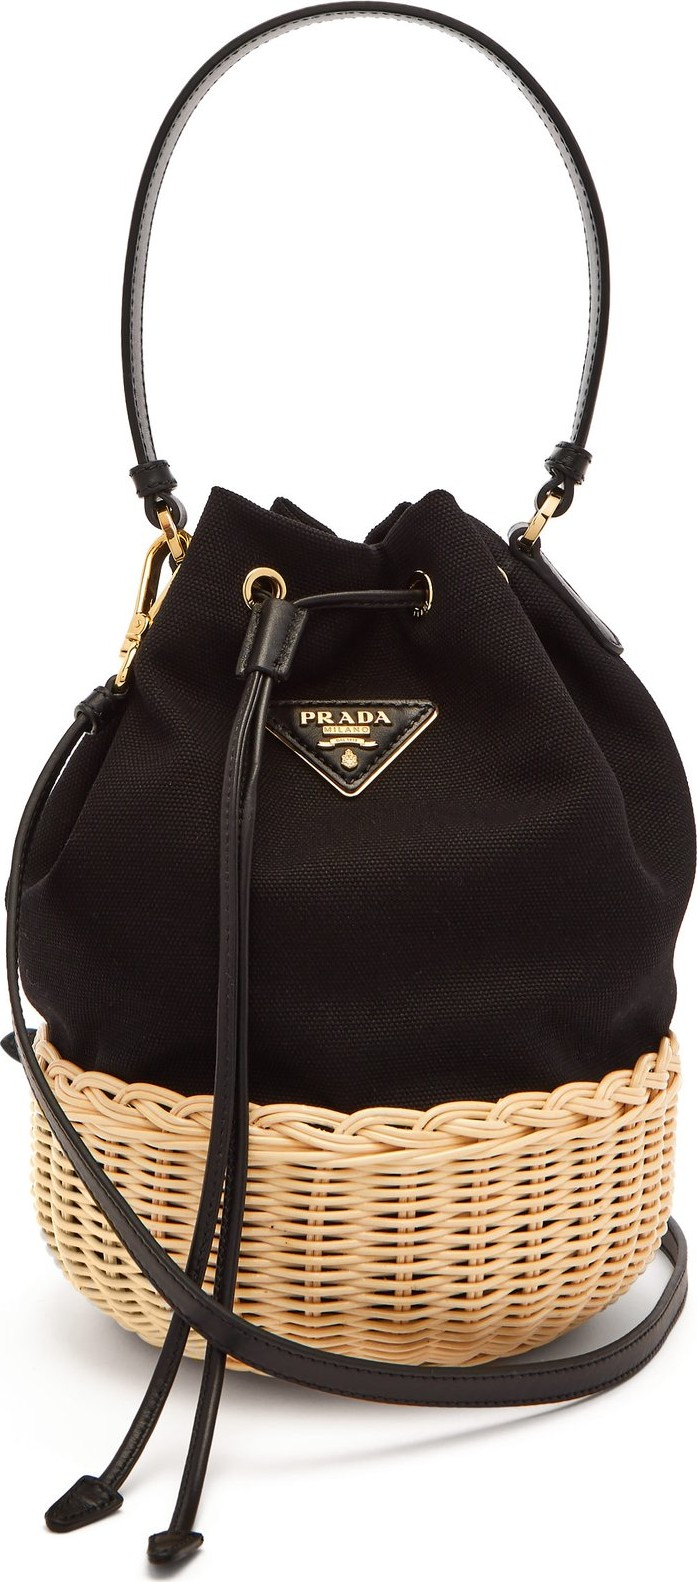 409688bb2797 Prada Canvas and woven straw bucket bag - Mkt